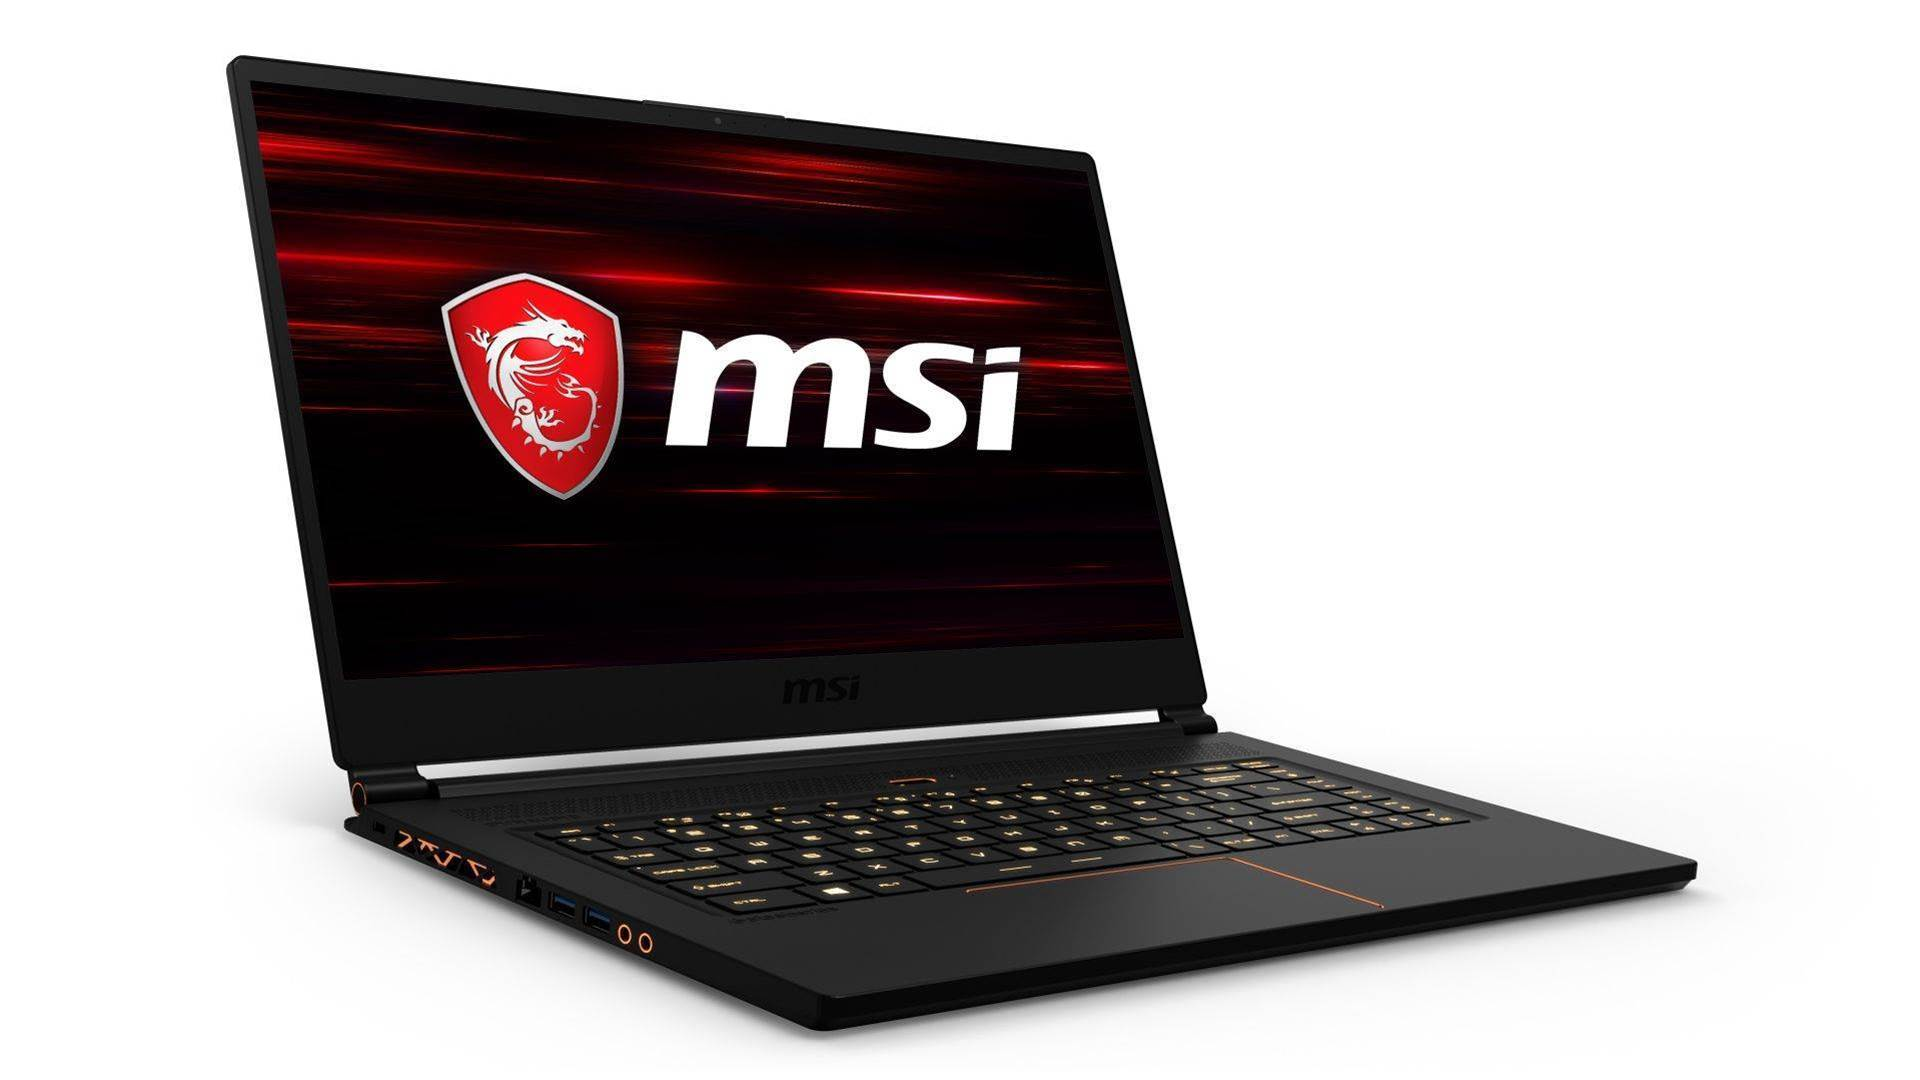 Review: MSI GS65 Stealth Thin 8RF laptop